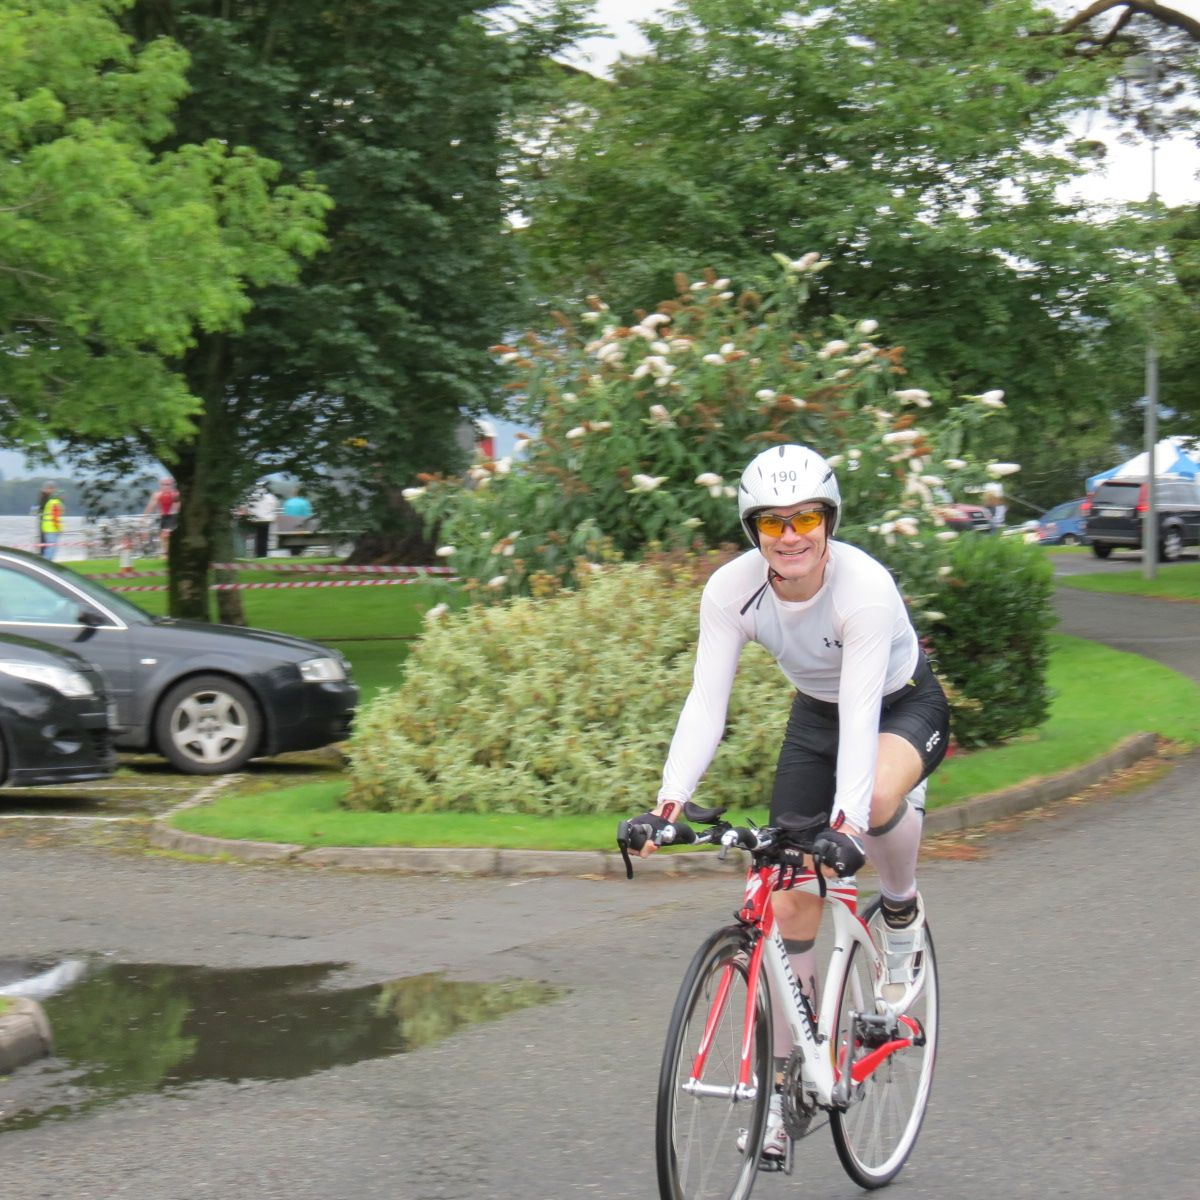 Heading out onto the 40km bike ride at Kilarney in Western Ireland August 2012